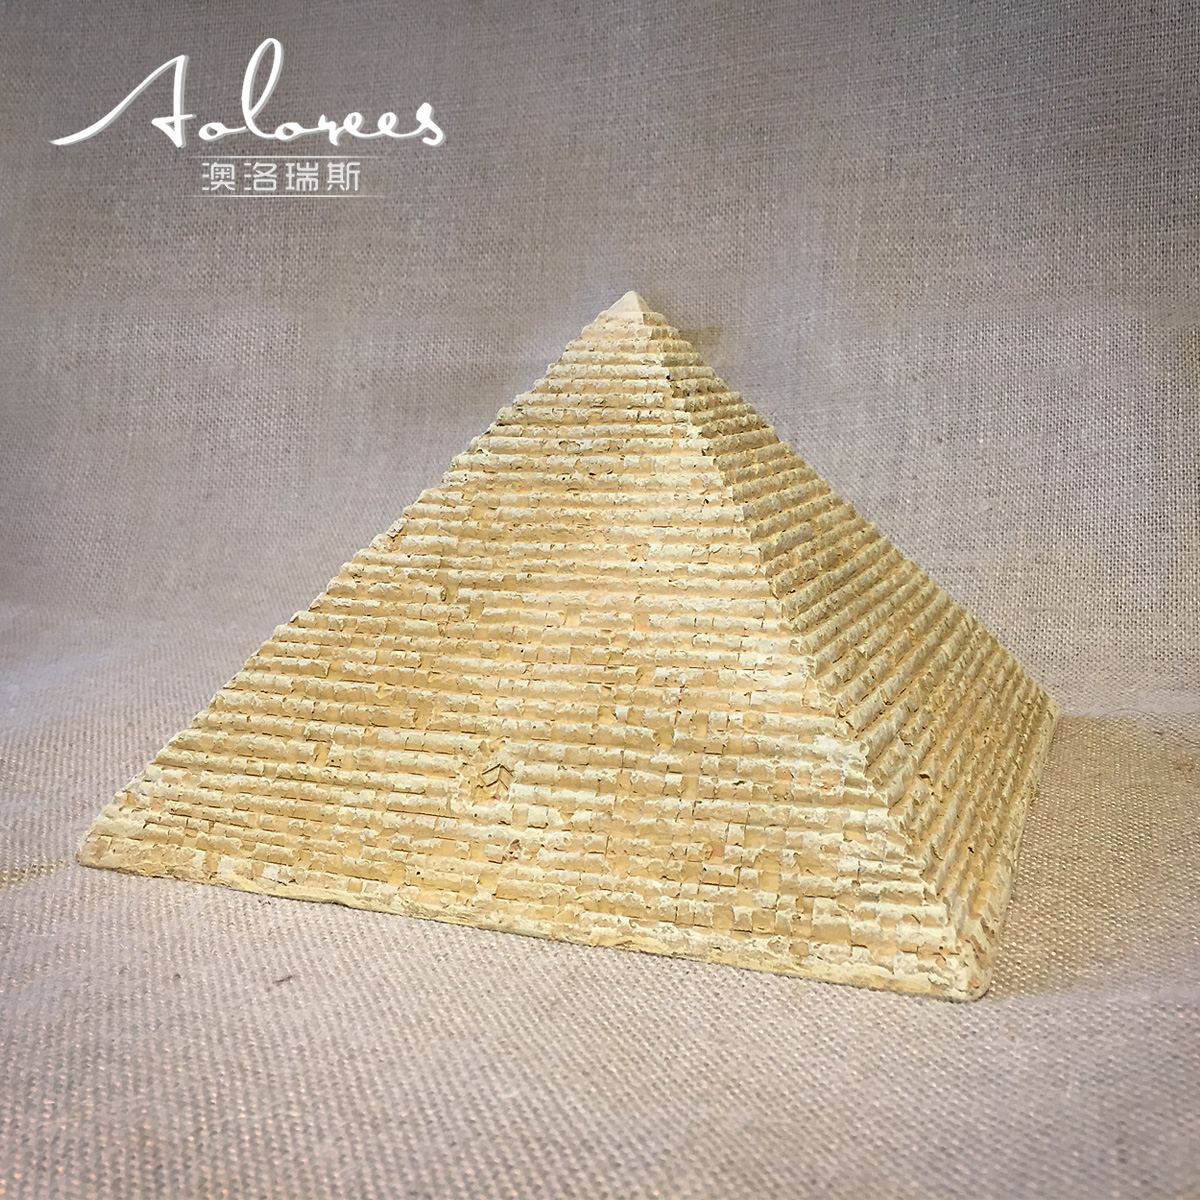 Aurores Egyptian crafts gizahuf Great Pyramid bar ornaments office decoration fortune gifts